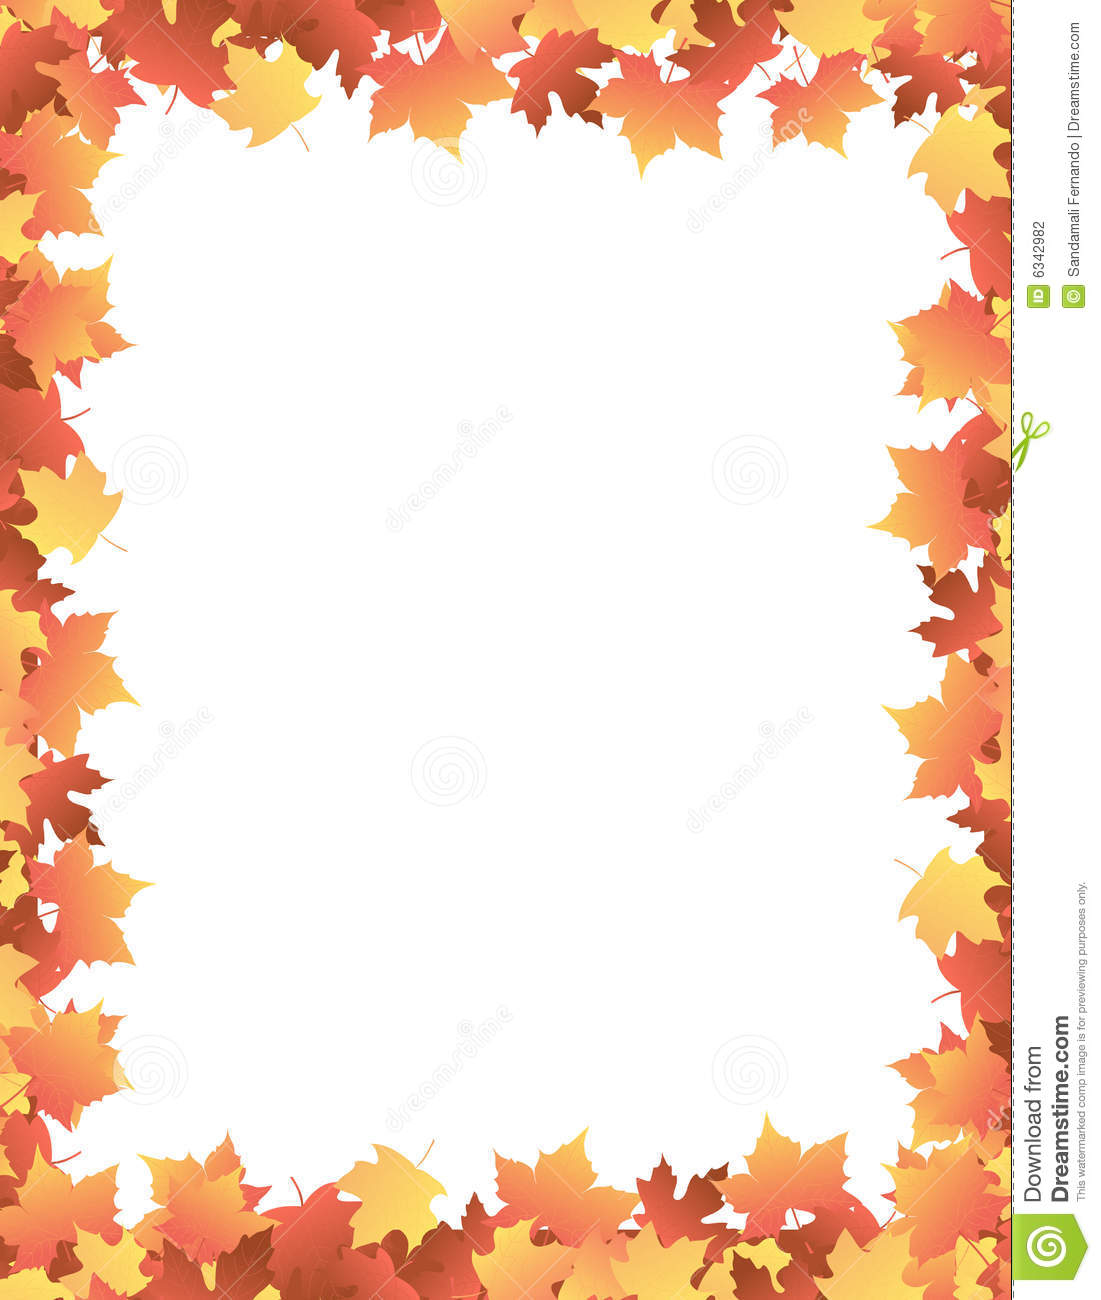 Autumn Leaves Border Clipart Wallpapers Gallery 1101x1300